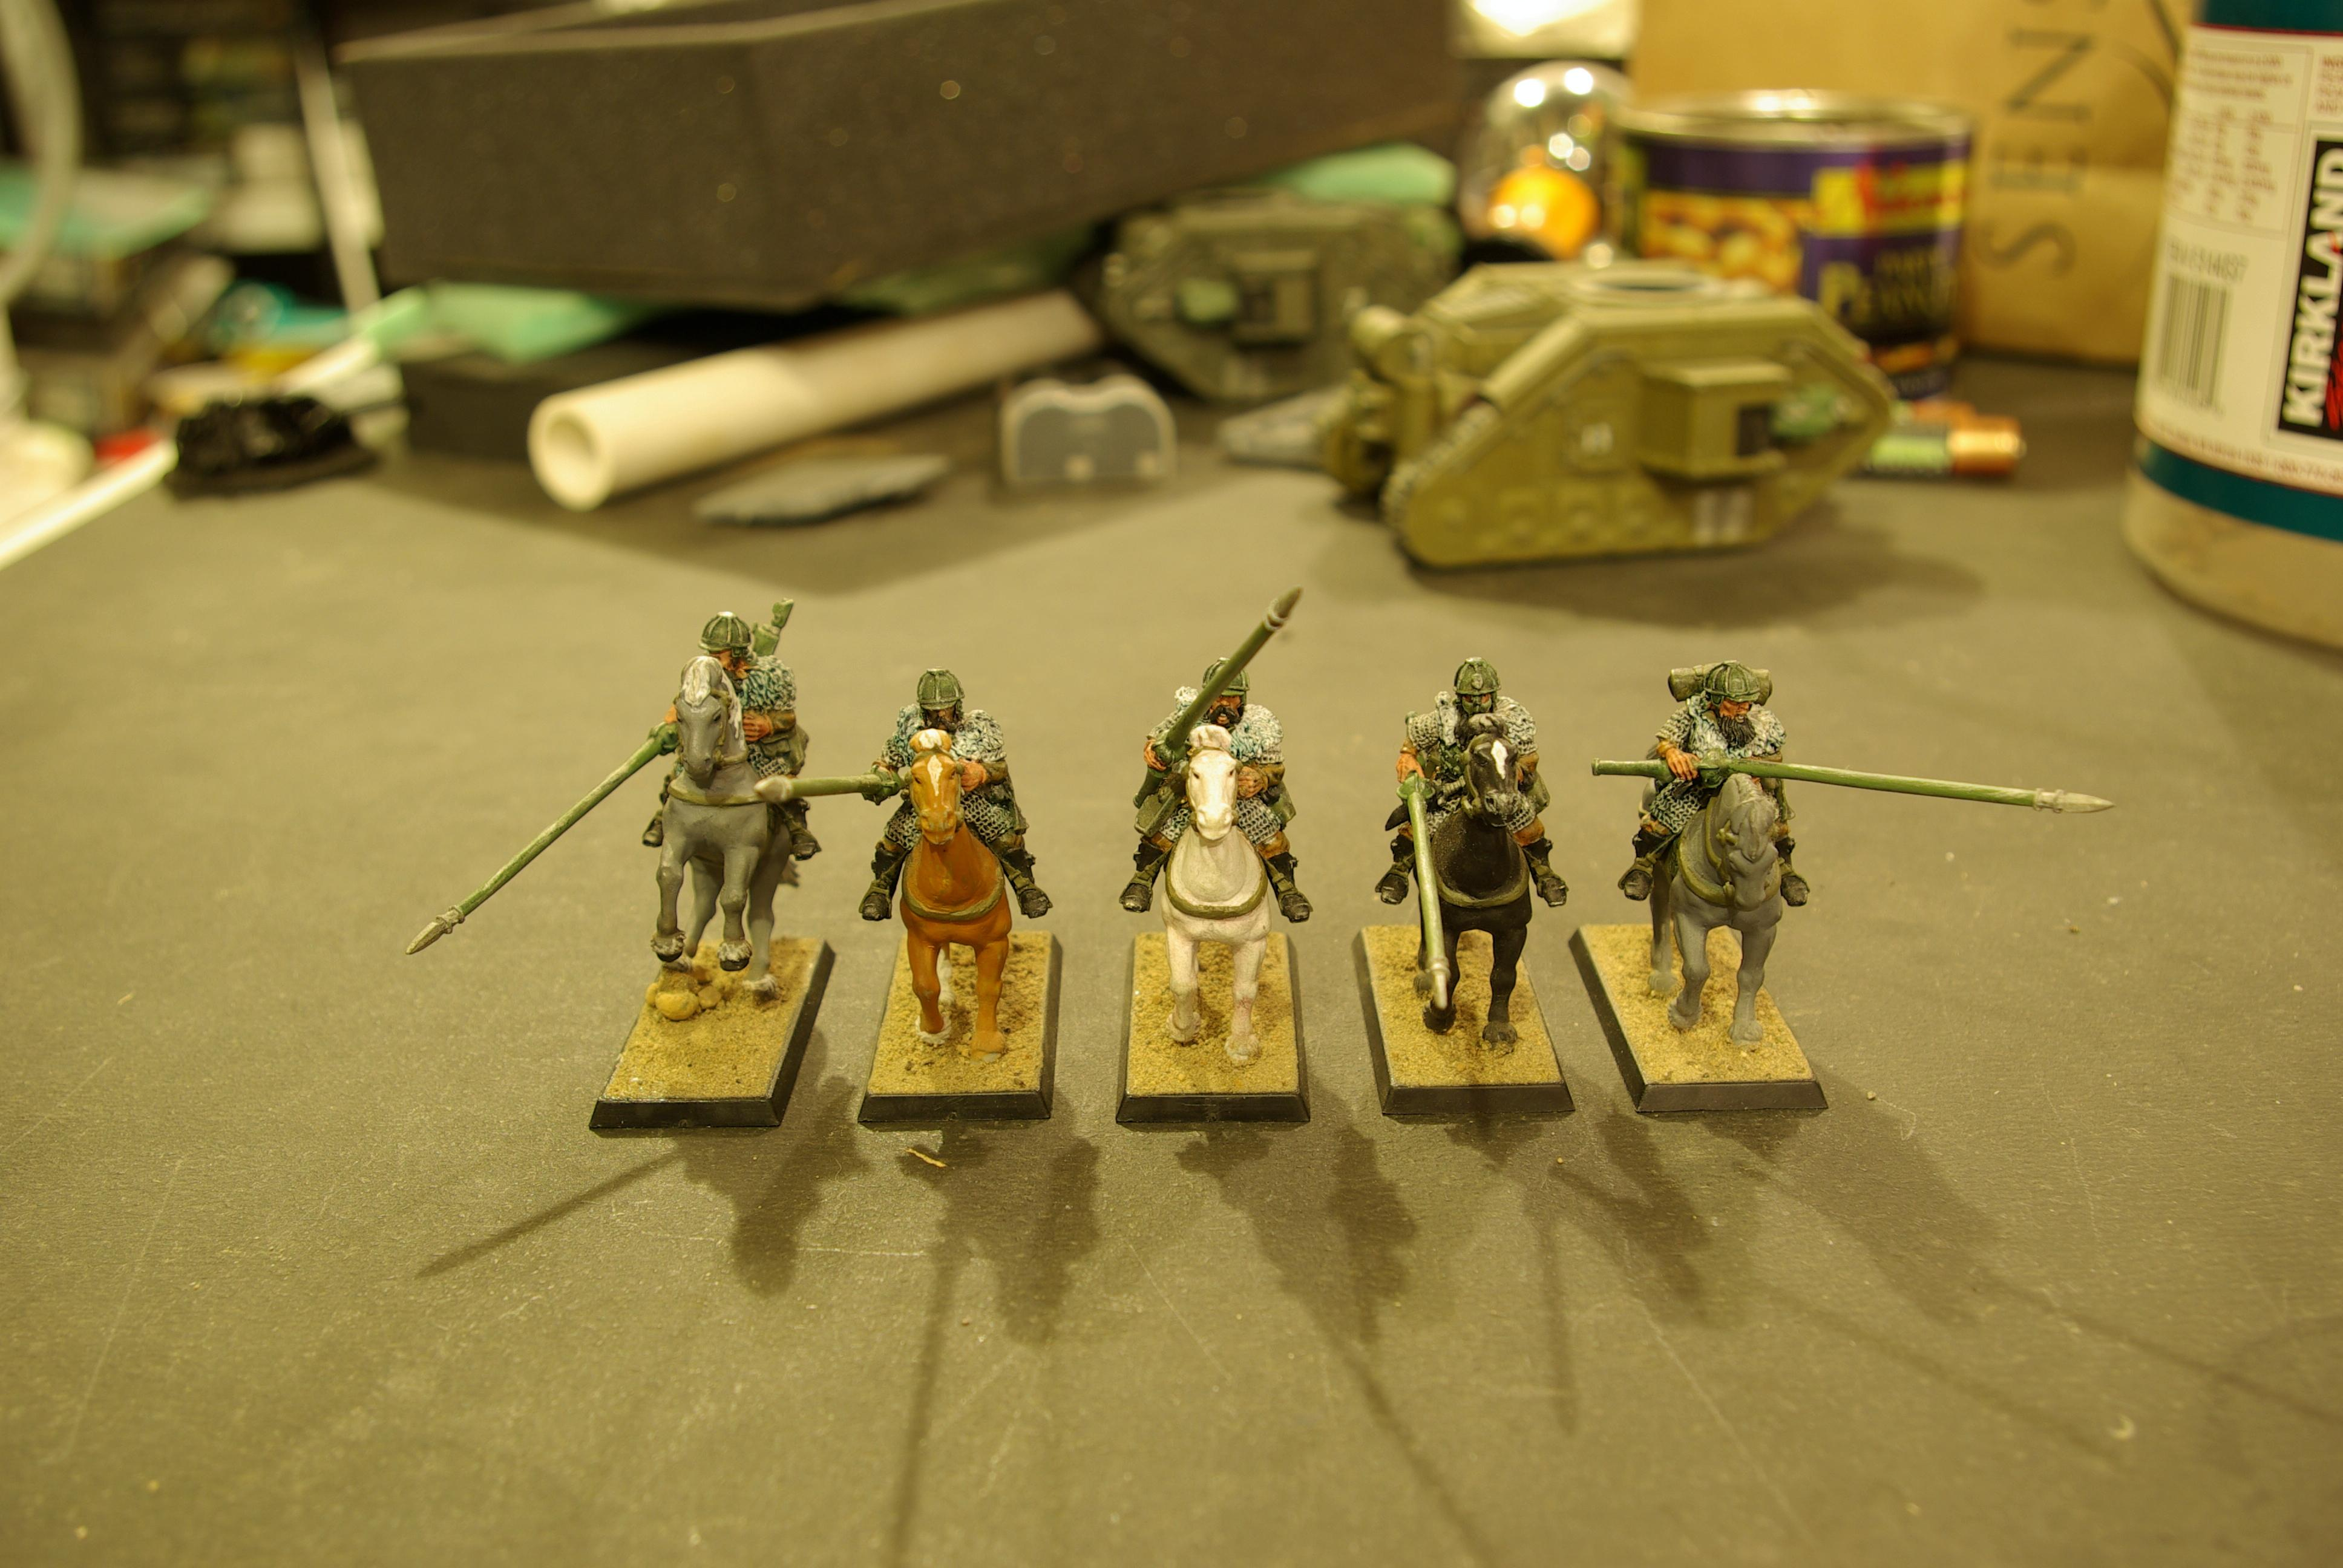 Cavalry, Imperial Guard, Warhammer 40,000